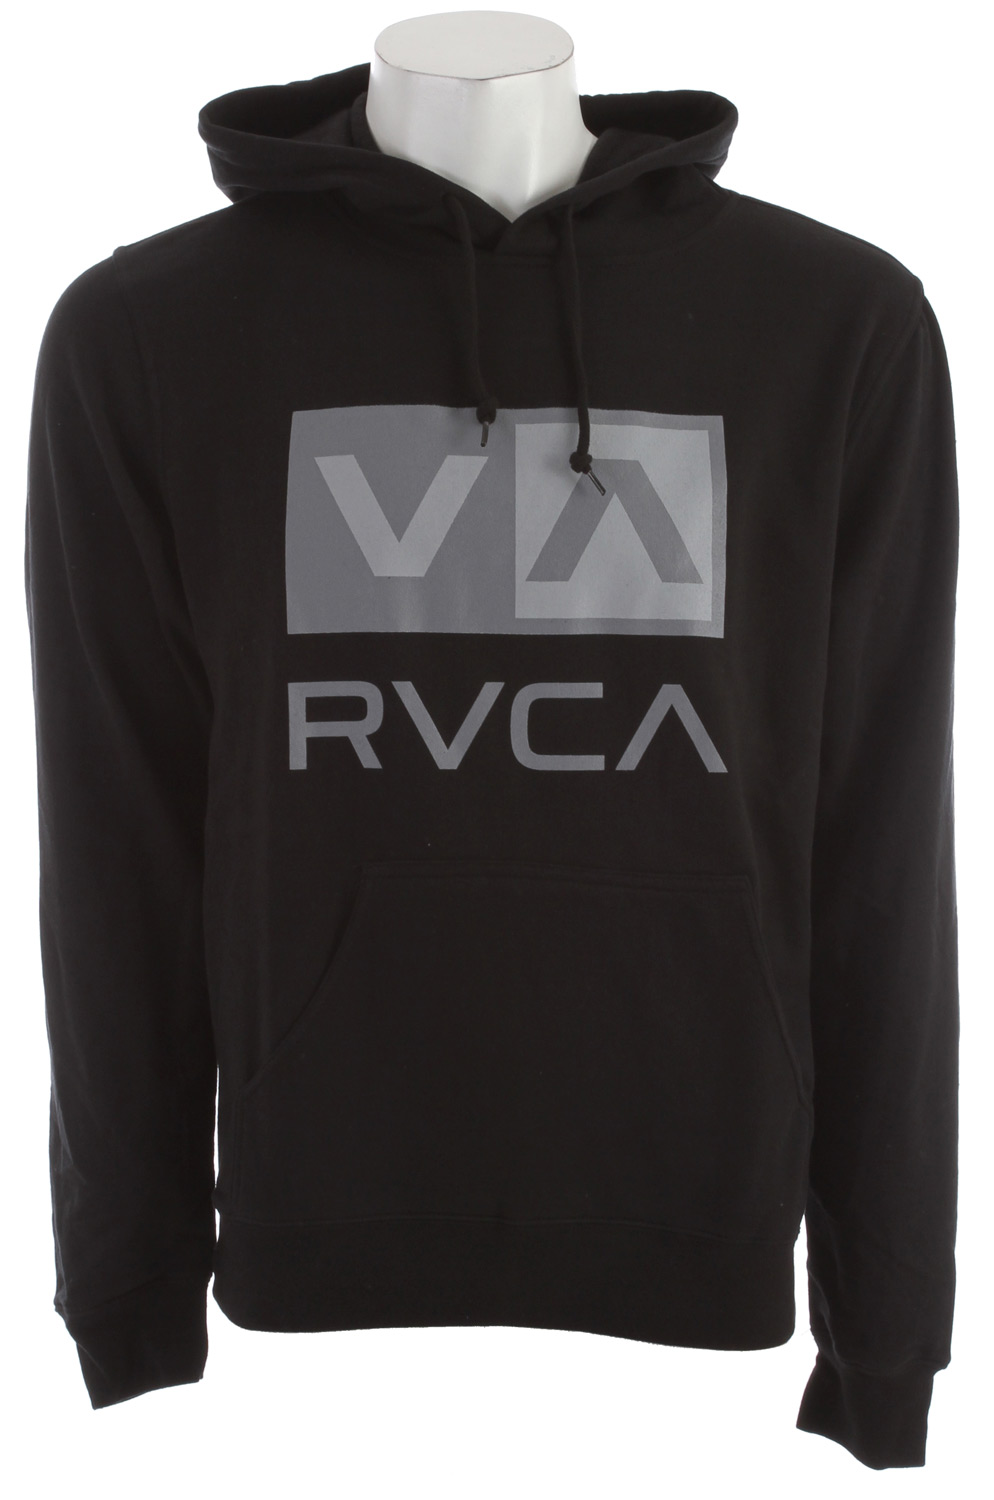 Key Features of the RVCA RVCA Balance Box Hoodie: 80% Cotton/20% Polyester lightweight fleece hooded pullover. Rib cuffs and waistband. Screen print front and inside neck. - $49.50